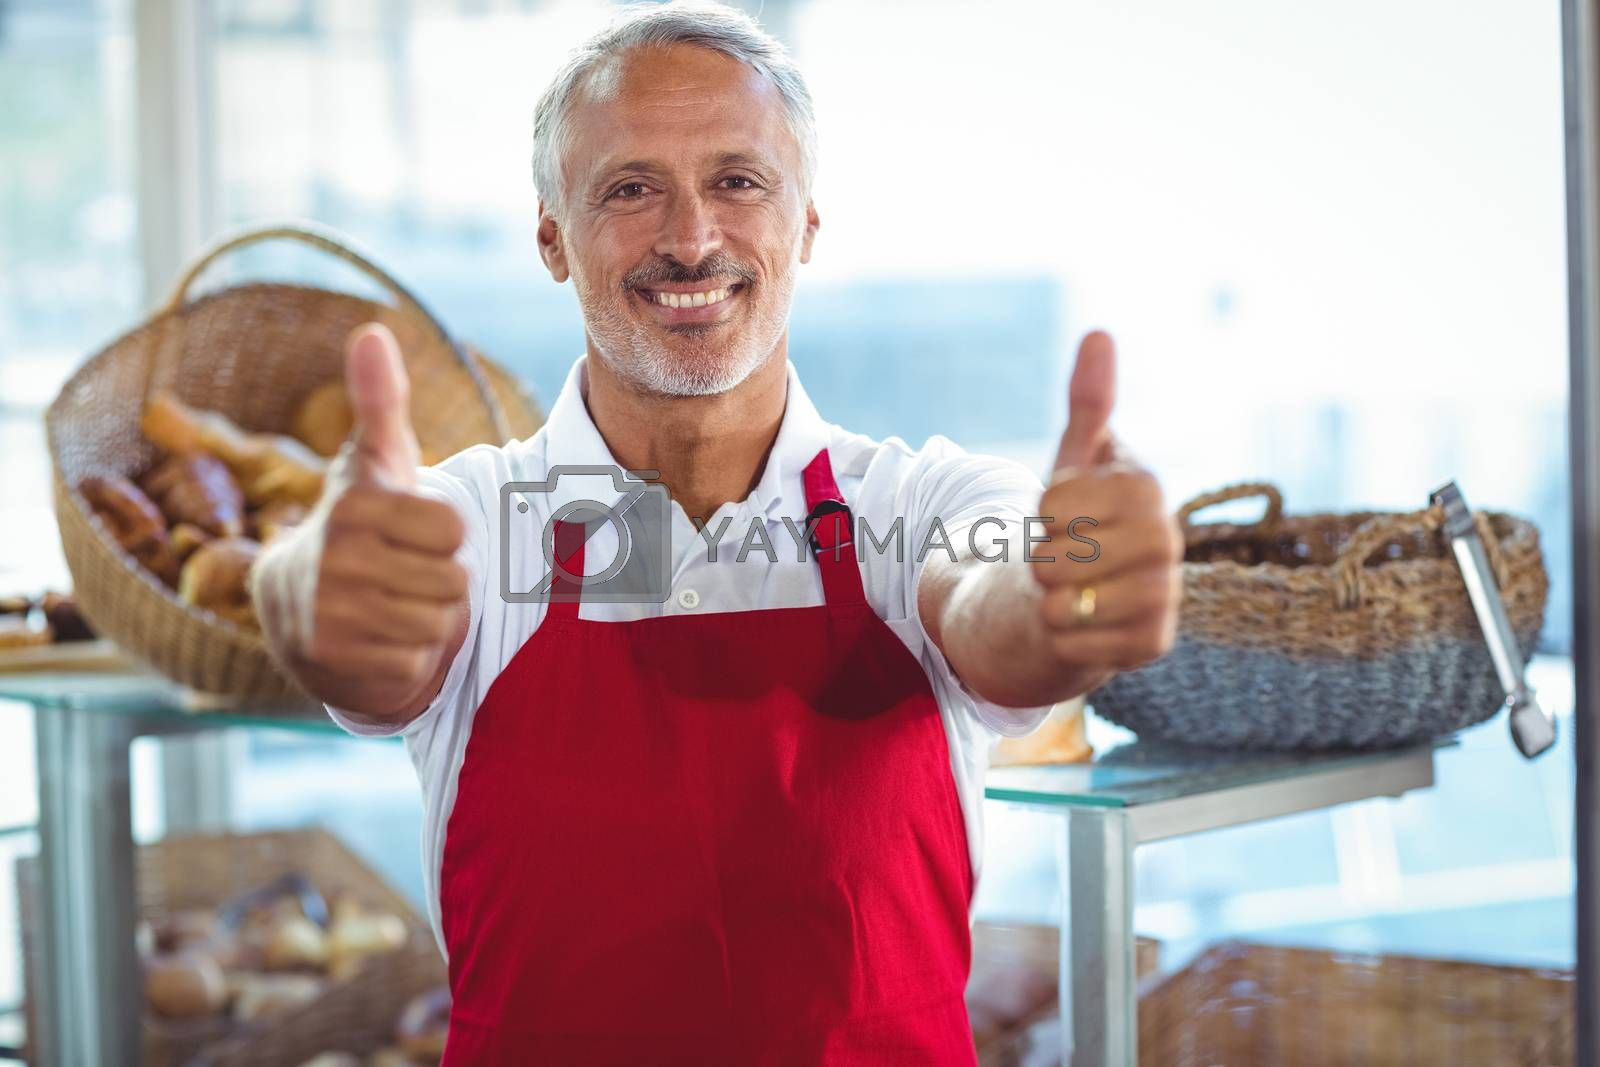 Royalty free image of Barista gesturing thumbs up and smiling at camera  by Wavebreakmedia